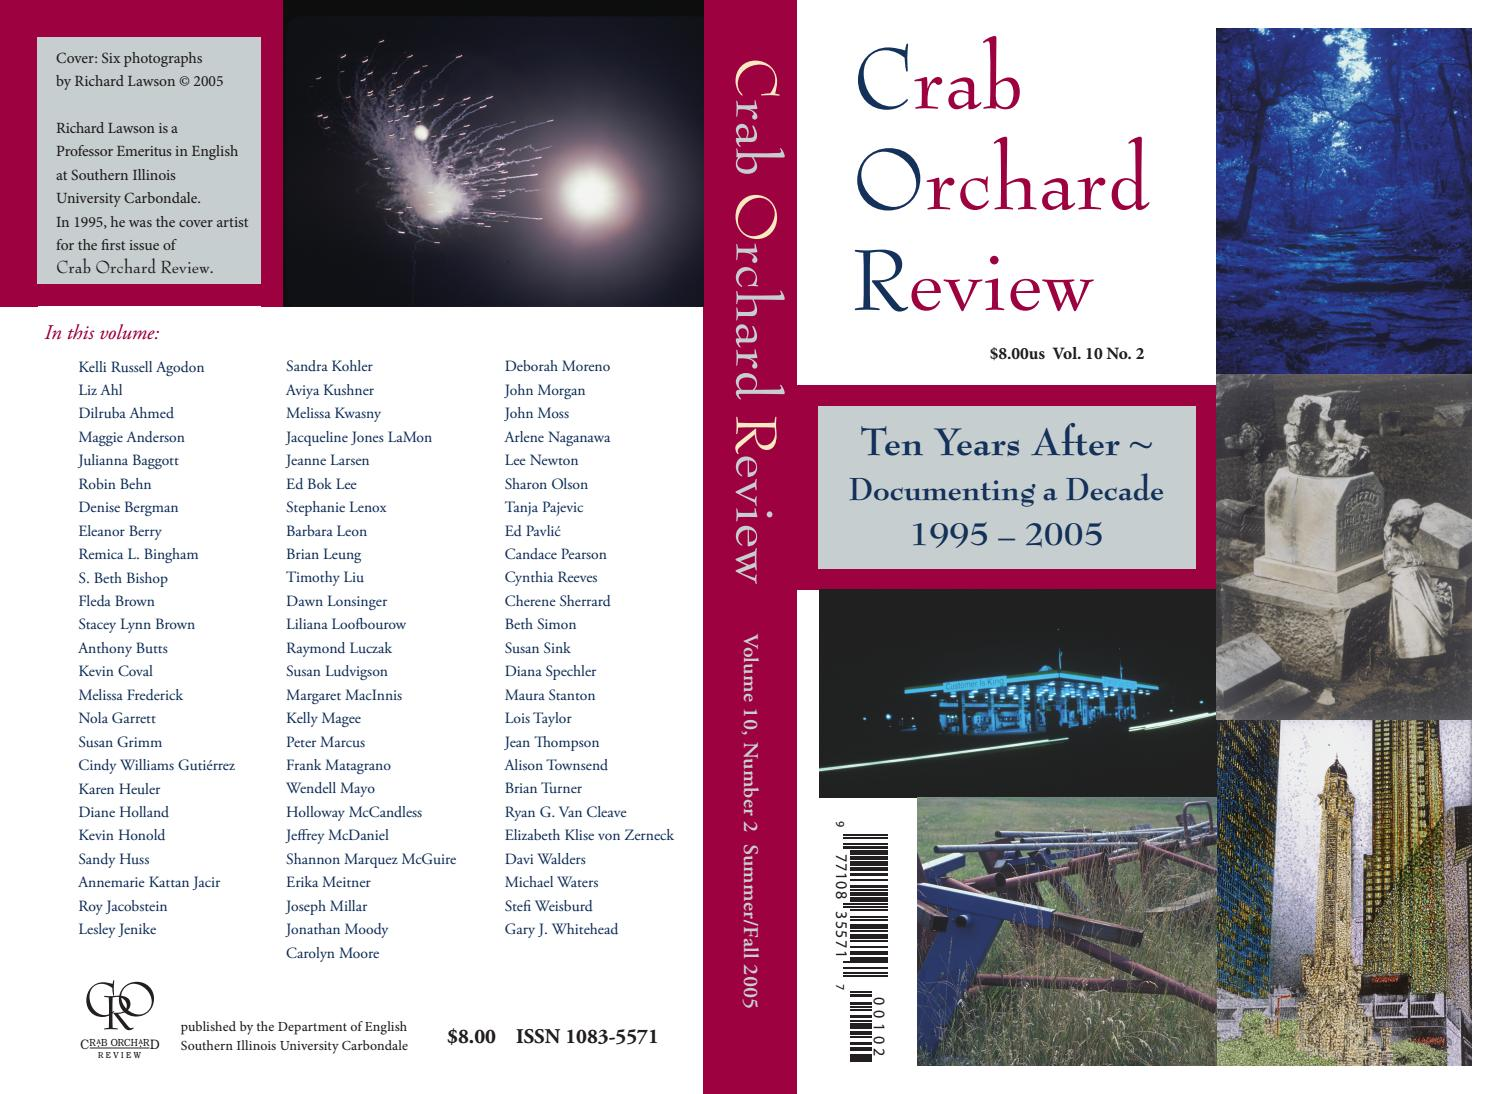 e6f1ed646 Crab Orchard Review Vol 10 No 2 S/F 2005 by Crab Orchard Review - issuu